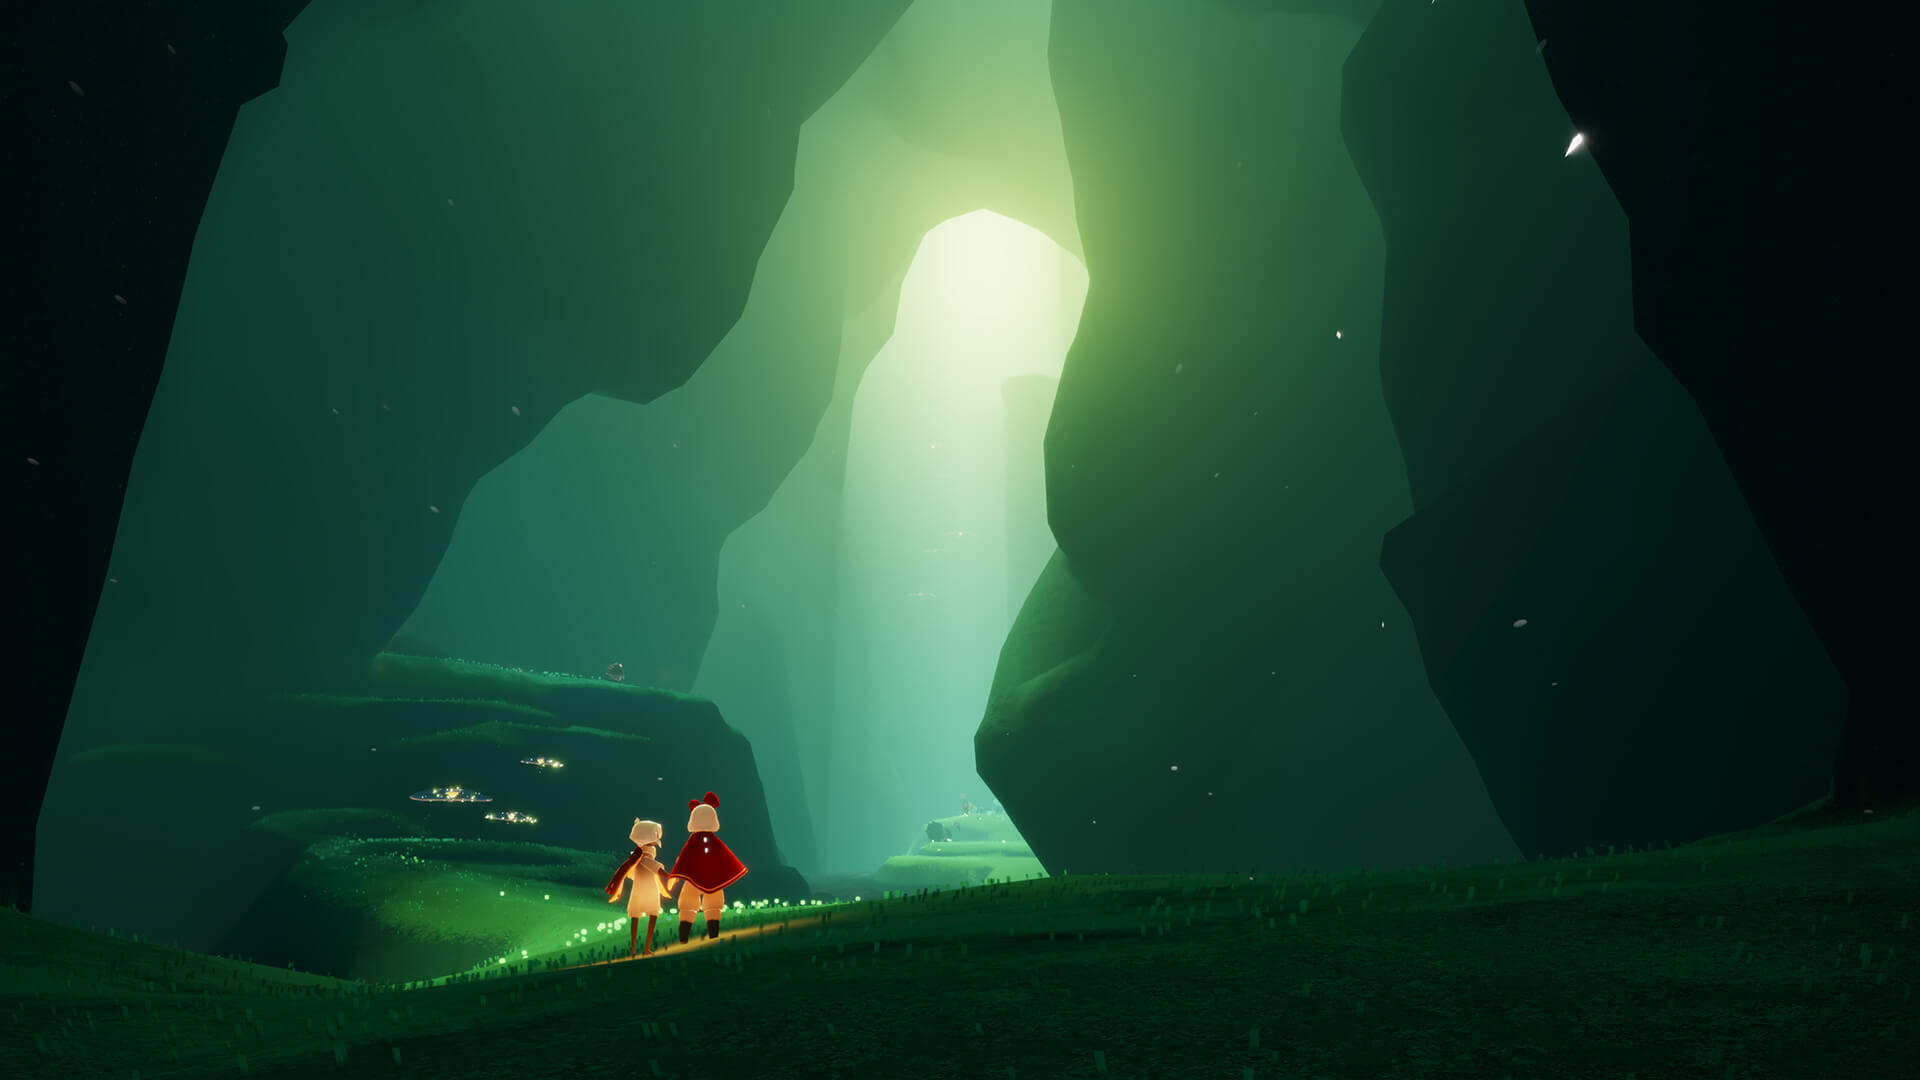 The latest game by thatgamecompany takes you into an ever-expanding fantasy world | Sky: Children of the Light | thatgamecompany | STIRworld